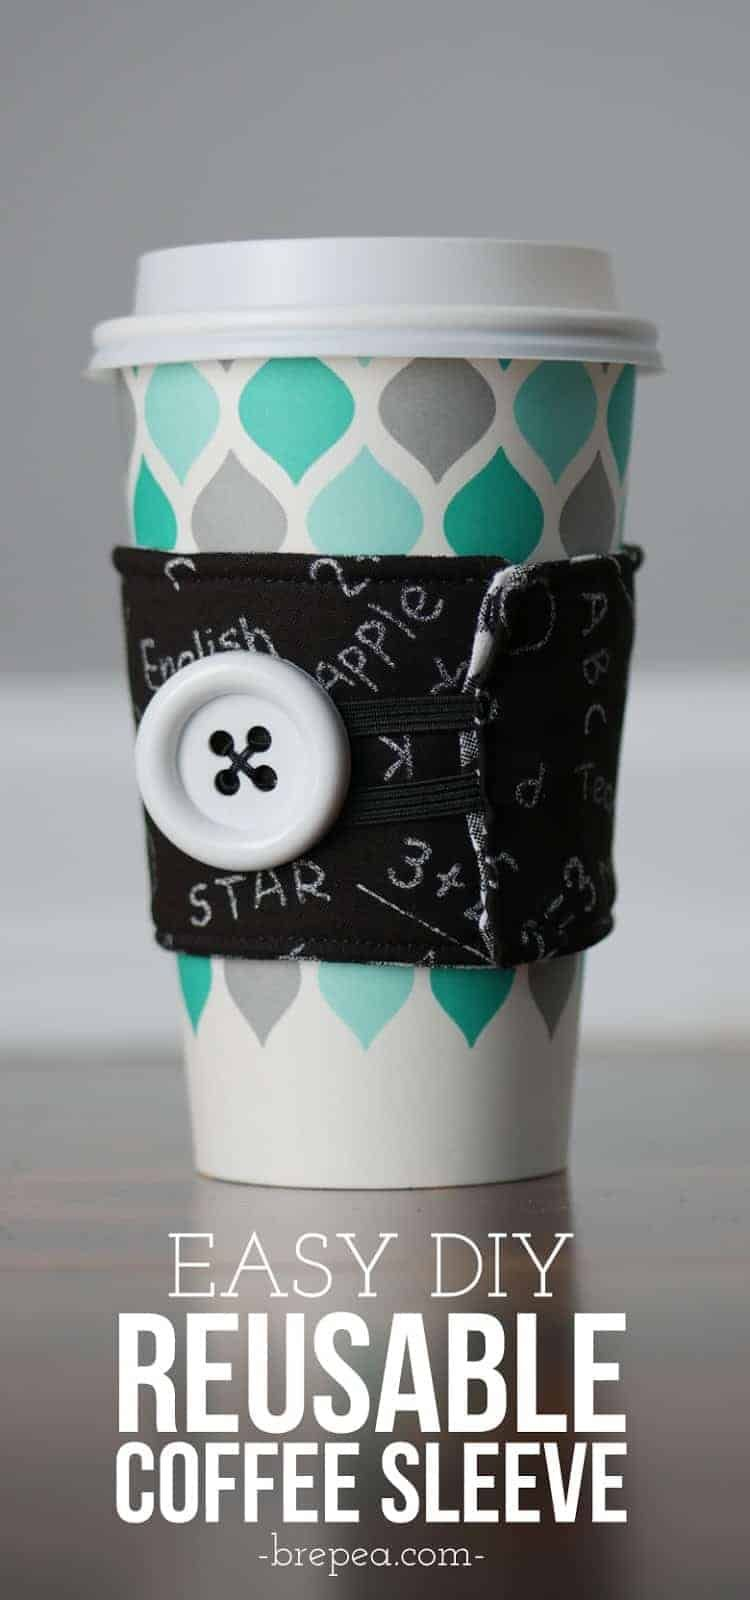 Easy DIY Reusable Coffee Cup Sleeve | Bre Pea #coffeecup